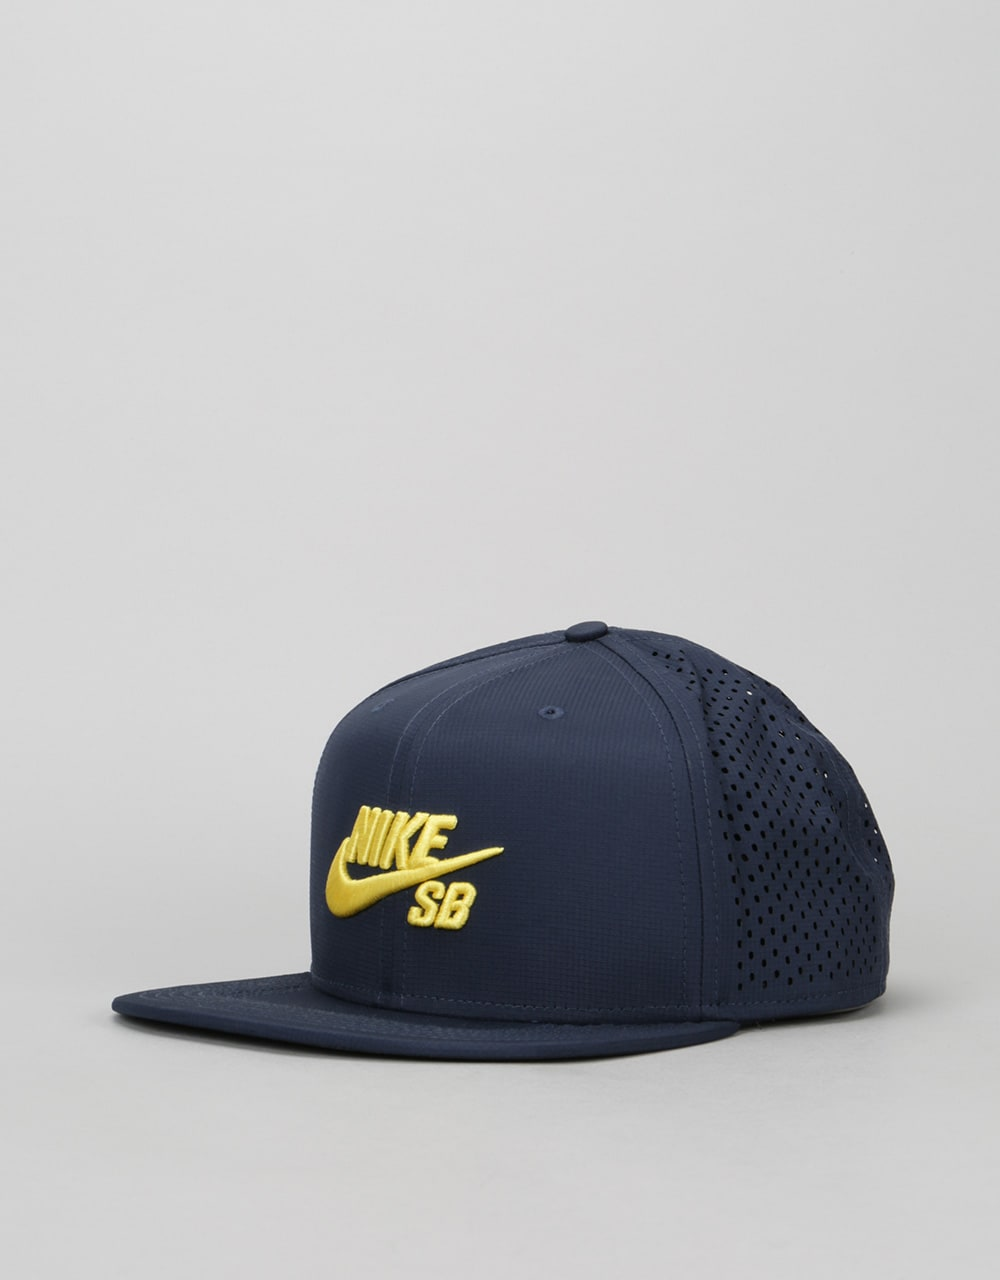 58b4019112b Nike SB Performance Trucker Cap - Obsidian Obsidian Black Tour Yellow